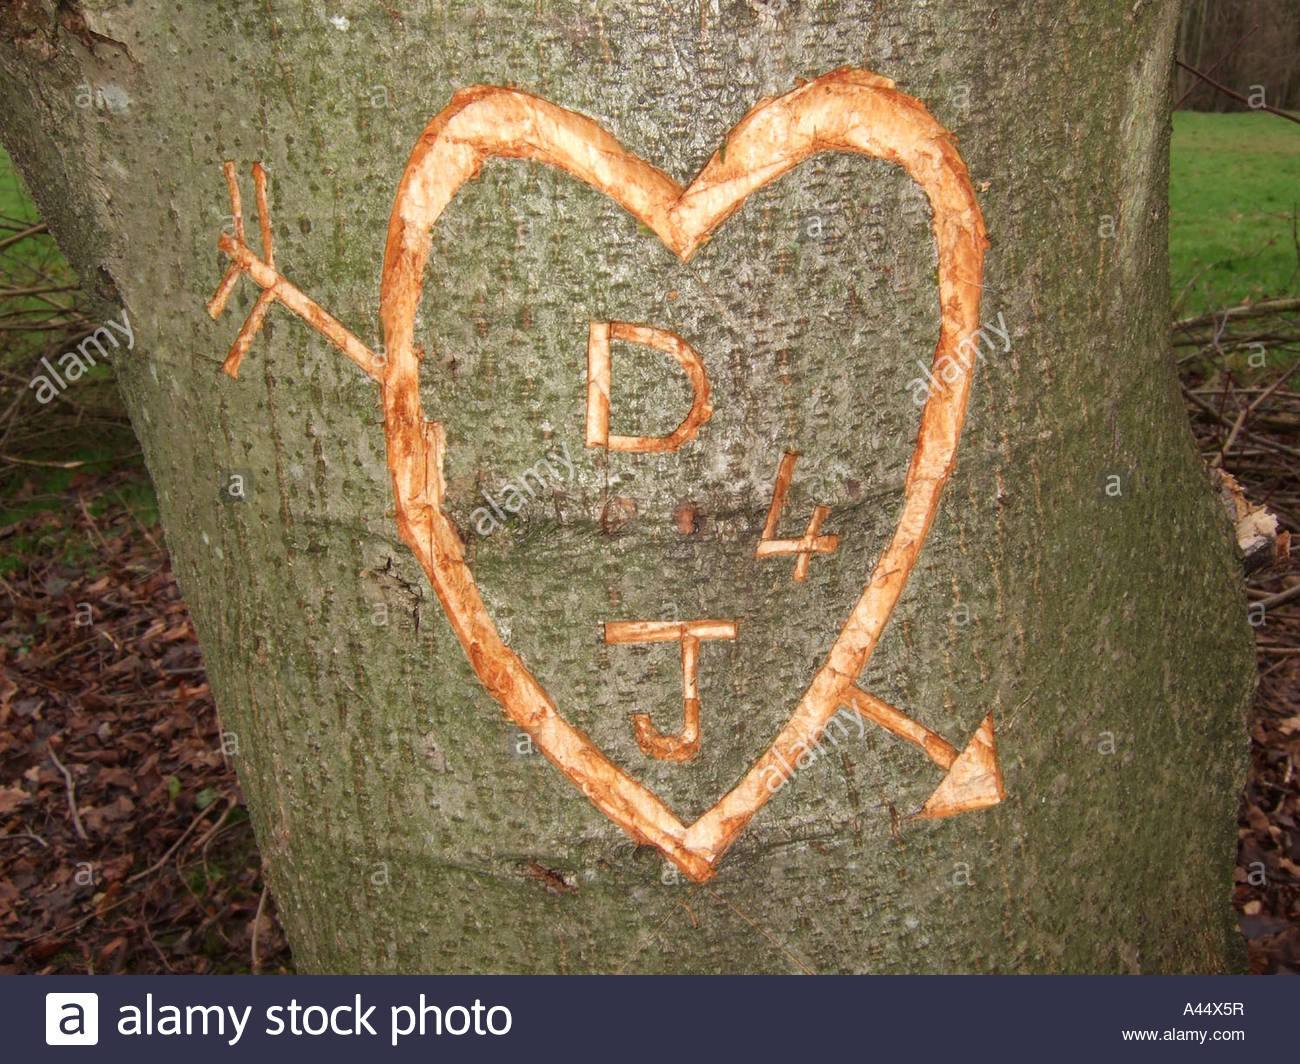 Initials Carved Tree Carving Stock Photos Initials Carved Tree